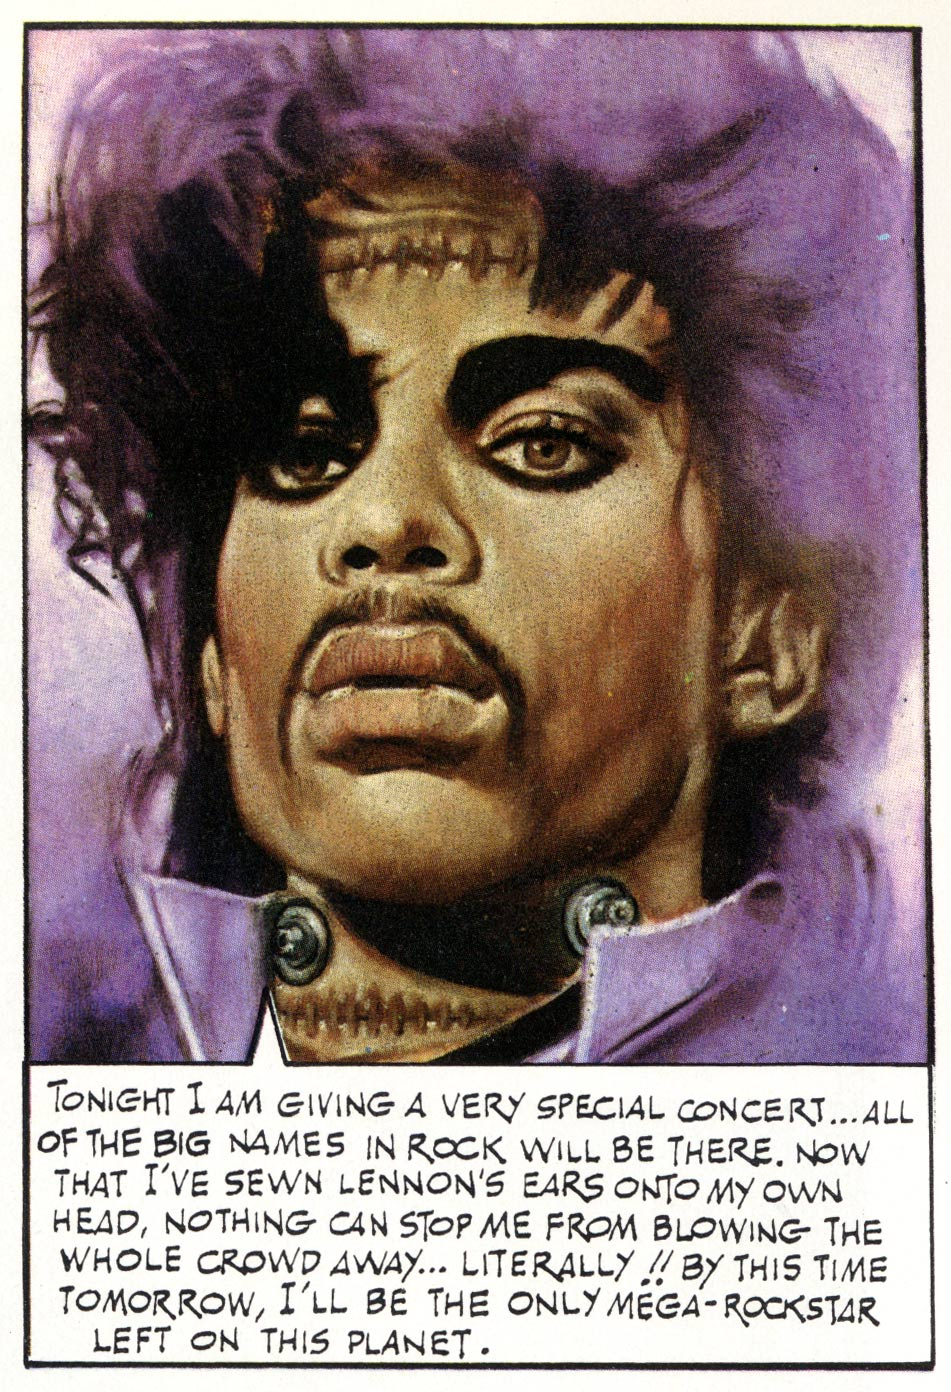 Prince, in Shooting stars, by Rod Kierkegaard Jr.